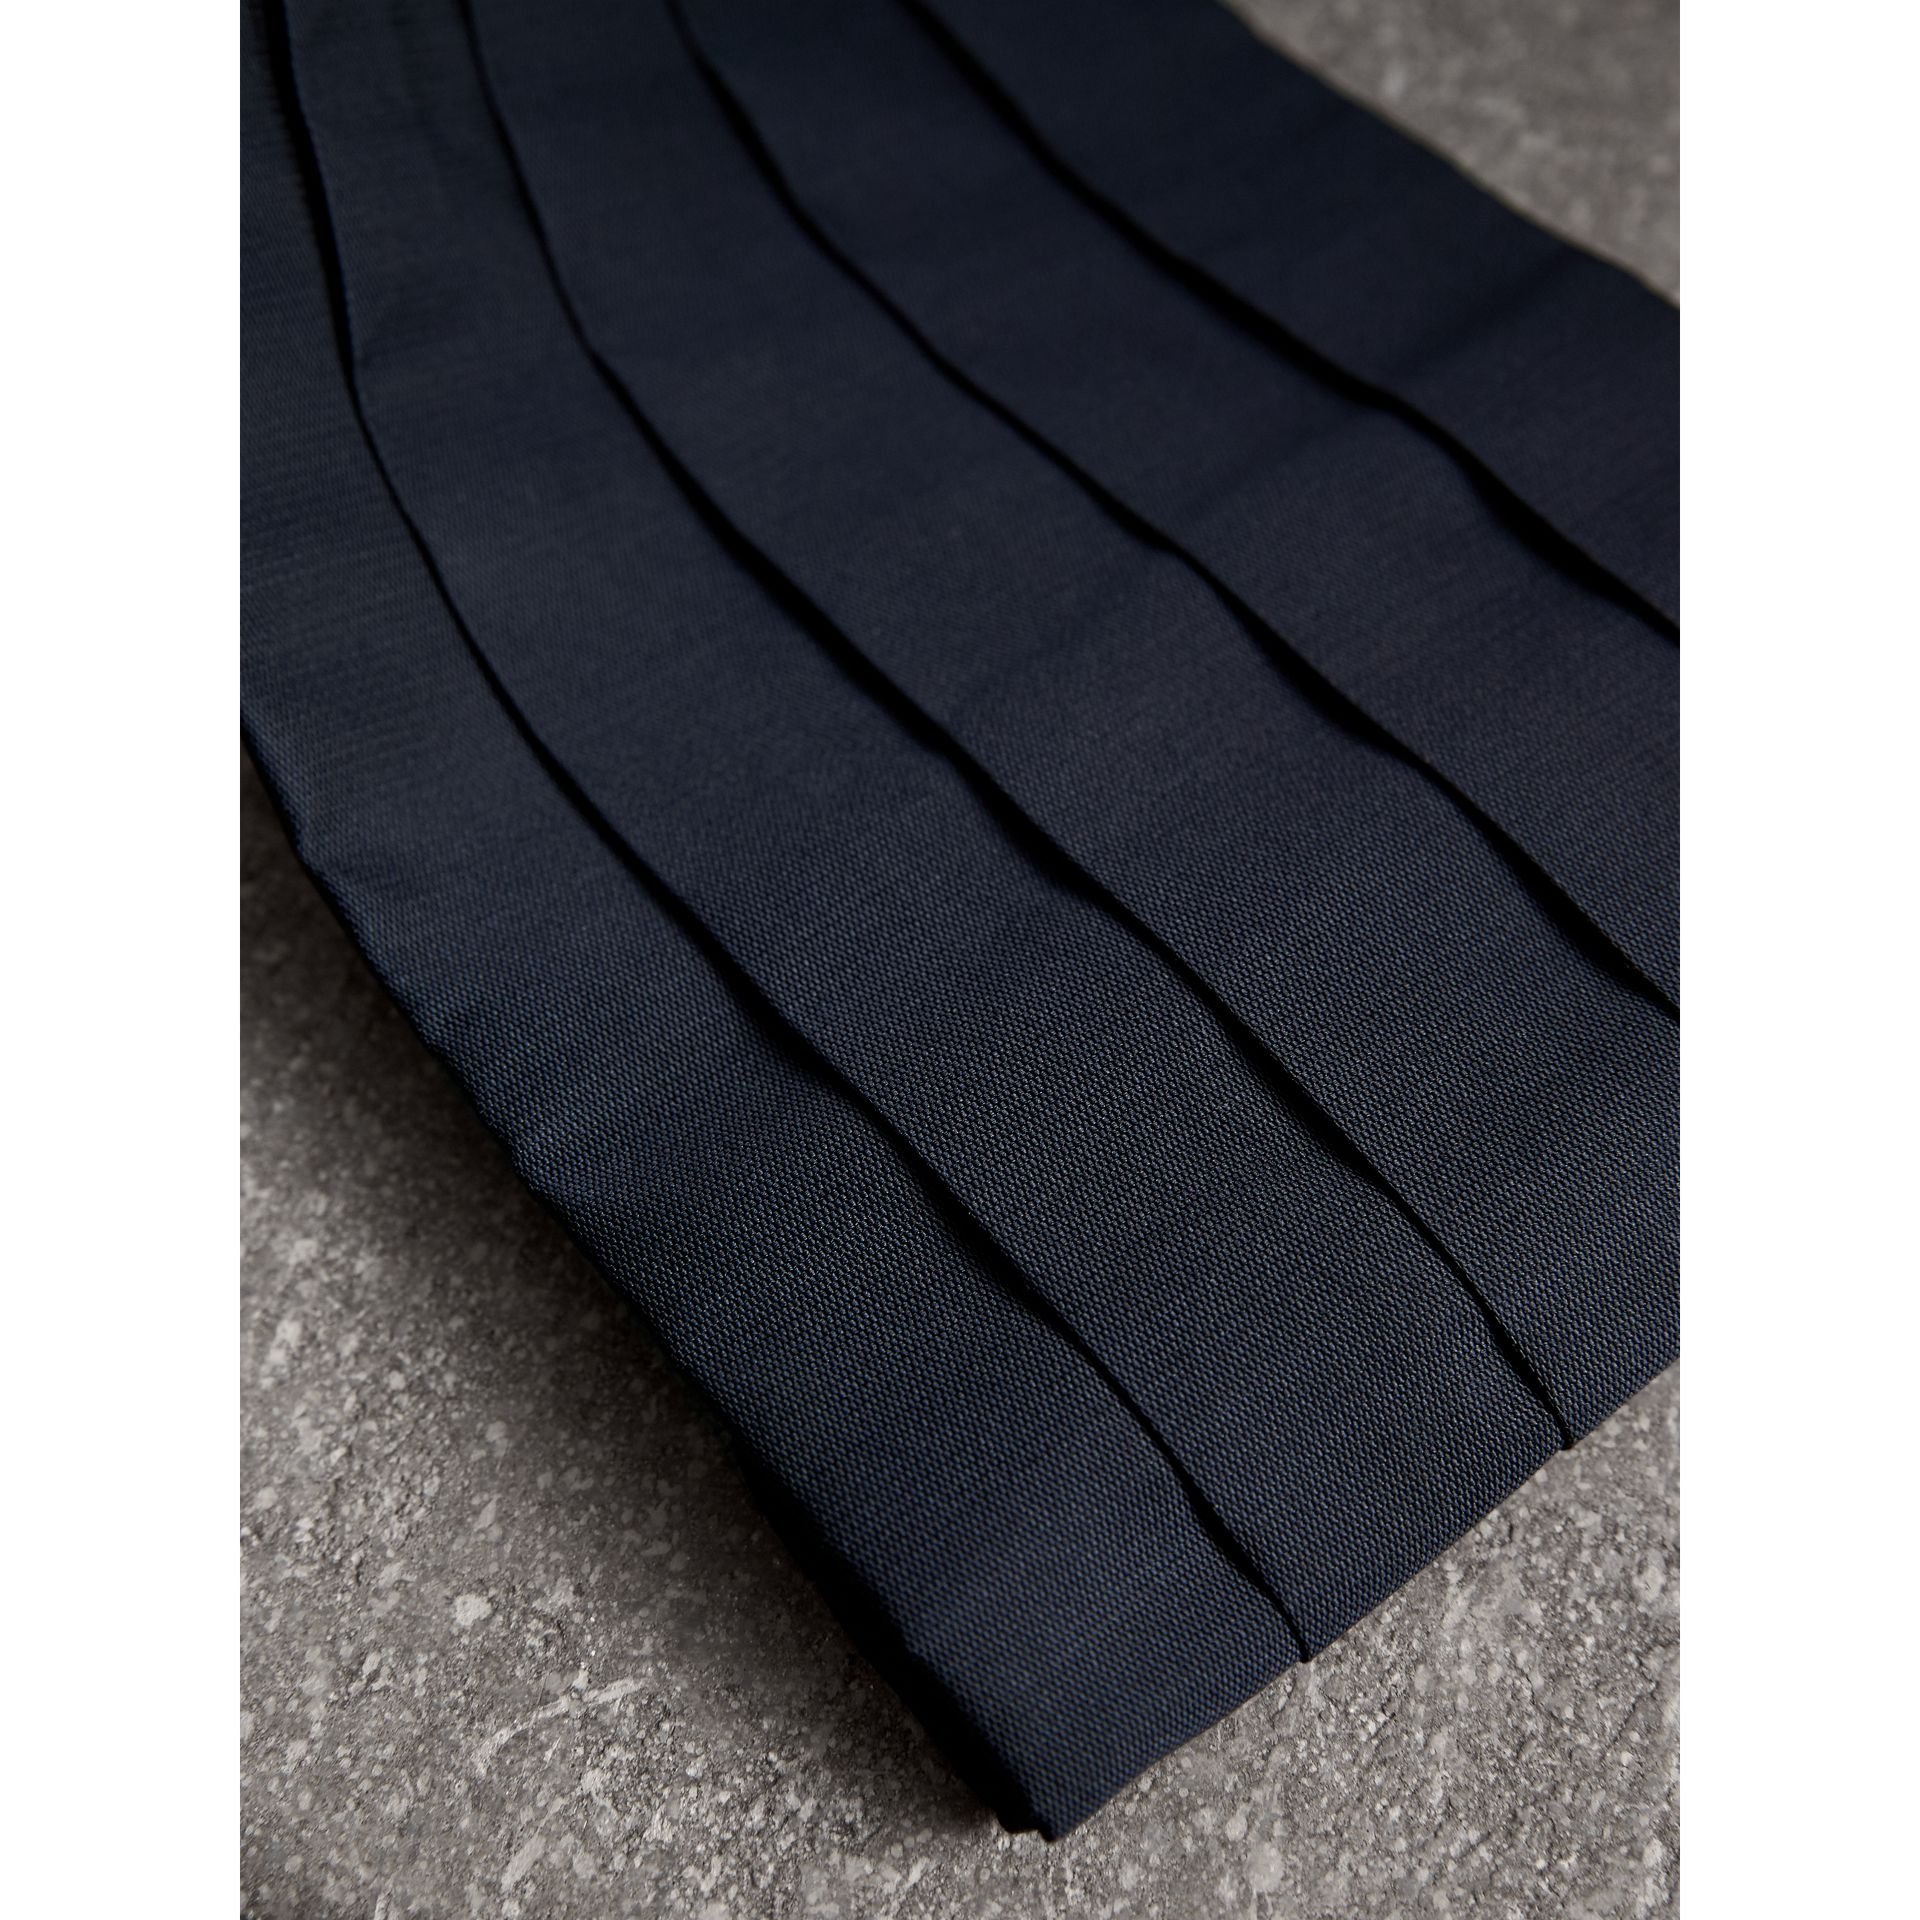 Pleated Silk Cummerbund in Midnight - Men | Burberry United Kingdom - gallery image 1